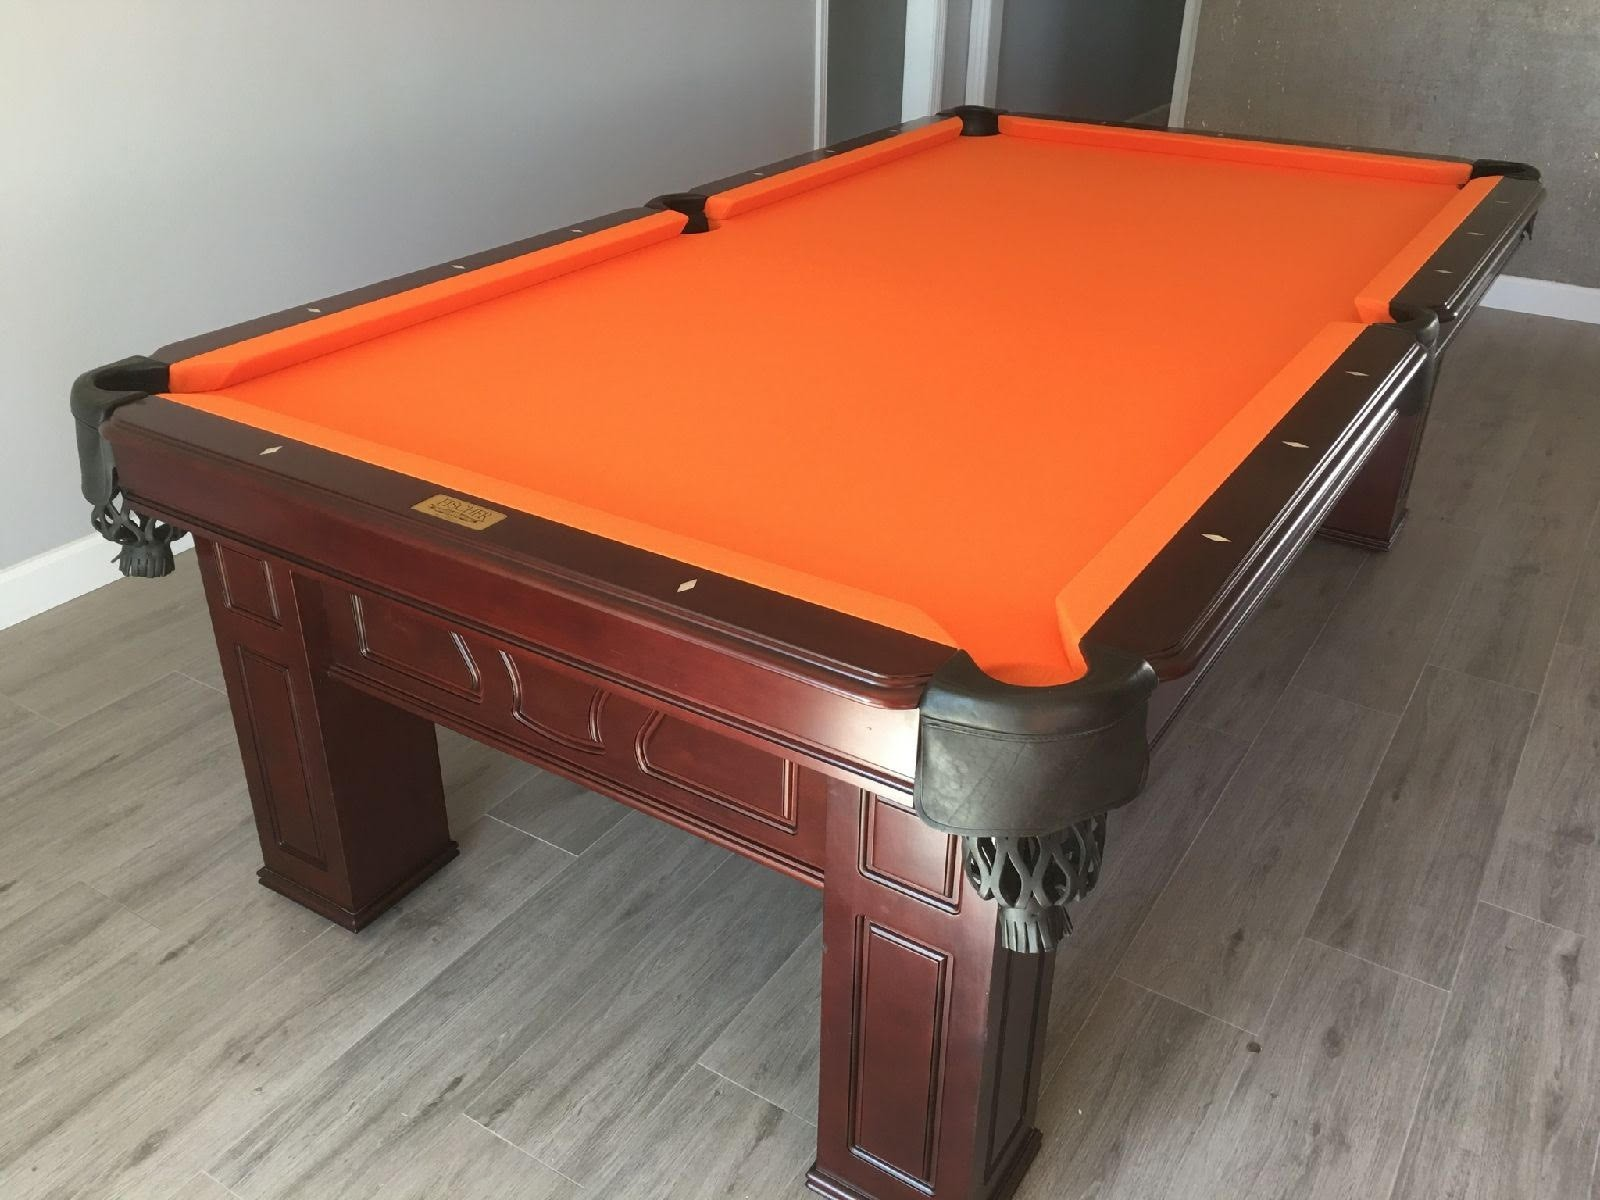 Pool Table Felt Installation  Billiard Table Recovering. Kids Desk. Desks Of Famous Writers. Small Game Table. Over Chair Table. Standing Adjustable Desk. Mirrored Buffet Table. Table Cleaner. Deep Dresser Drawers